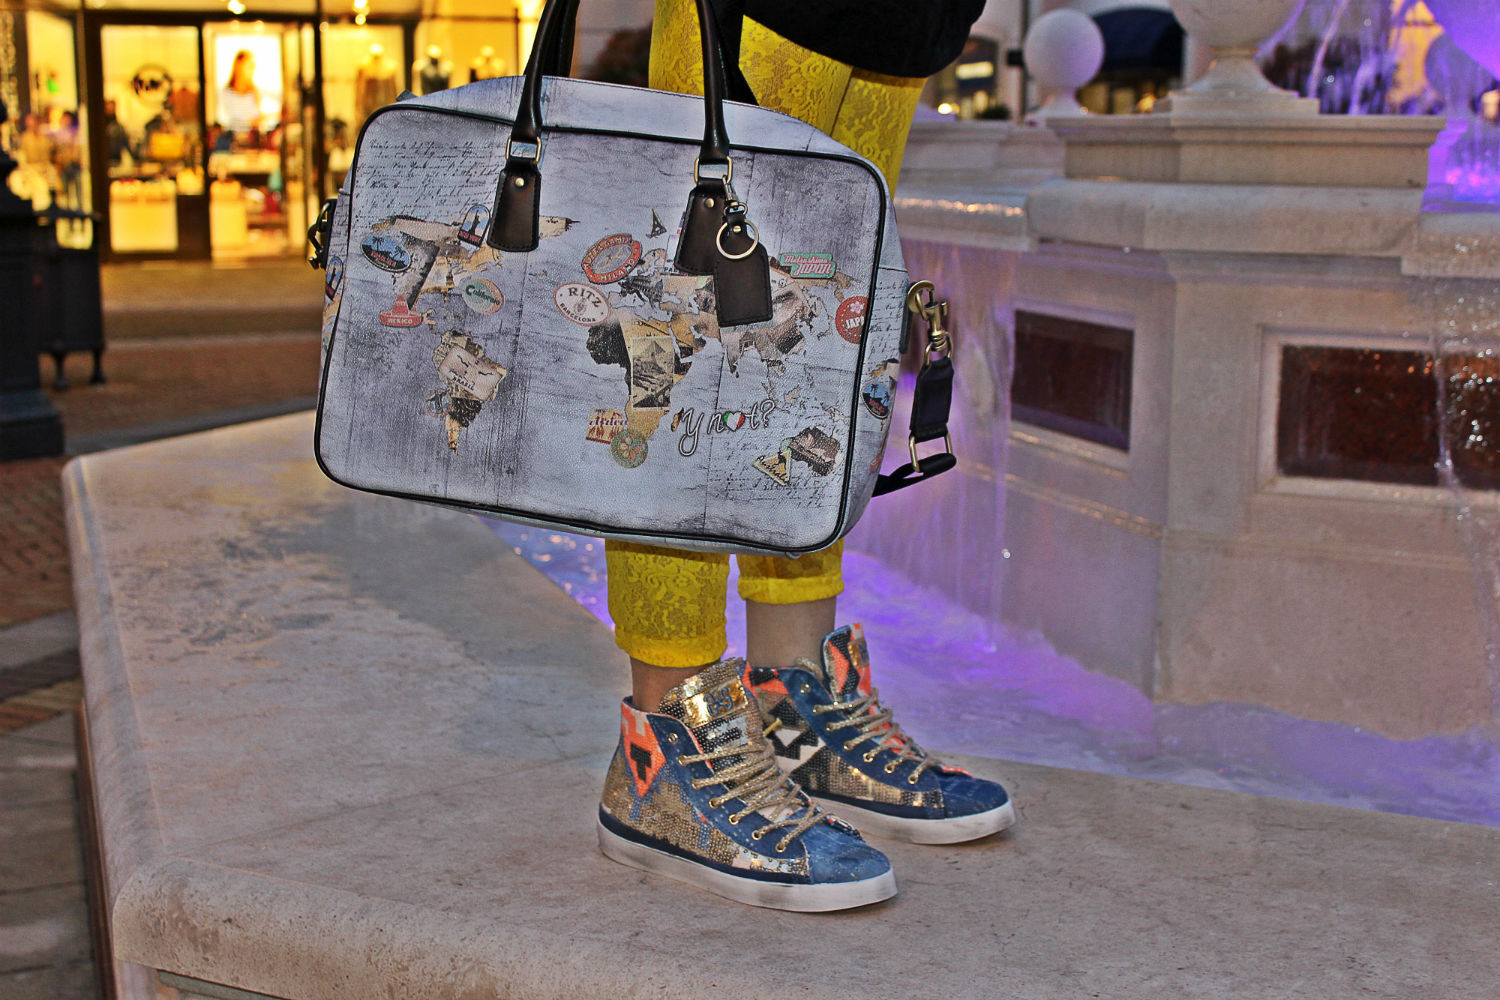 BI-JOUX-BUGIE-LACE--YELLOW-PANTS-YNOTMILANO-BAG-2STARSHOES3